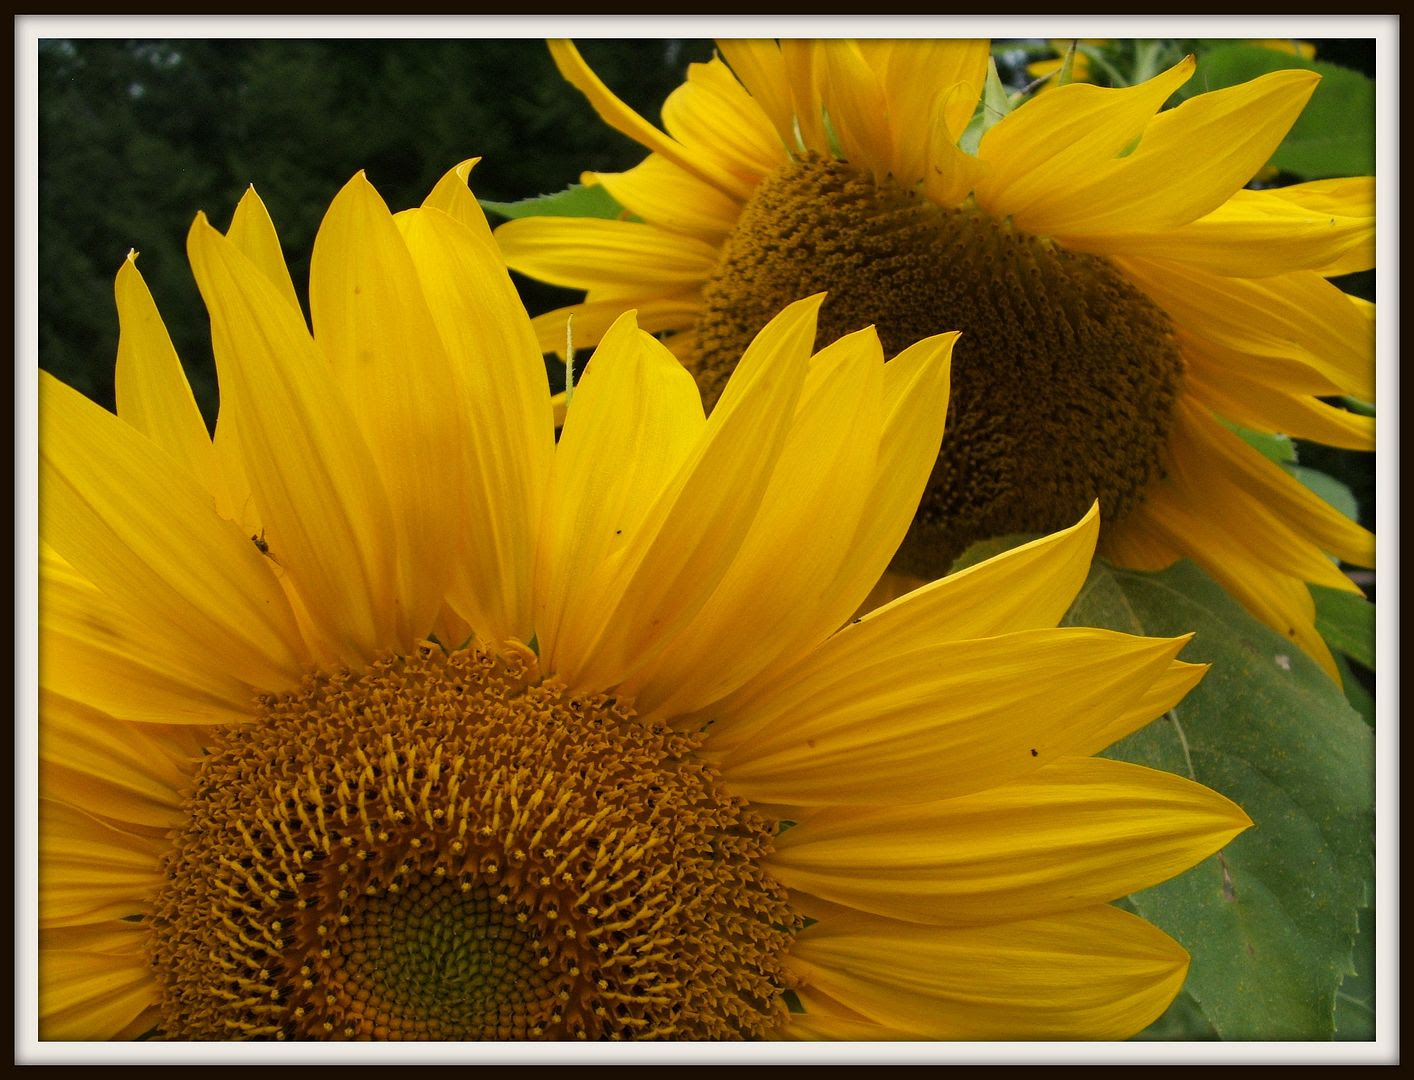 Giant Gray Stripe Sunflower by Angie Ouellette-Tower for godsgrowinggarden.com photo 001_zps38410cd8.jpg